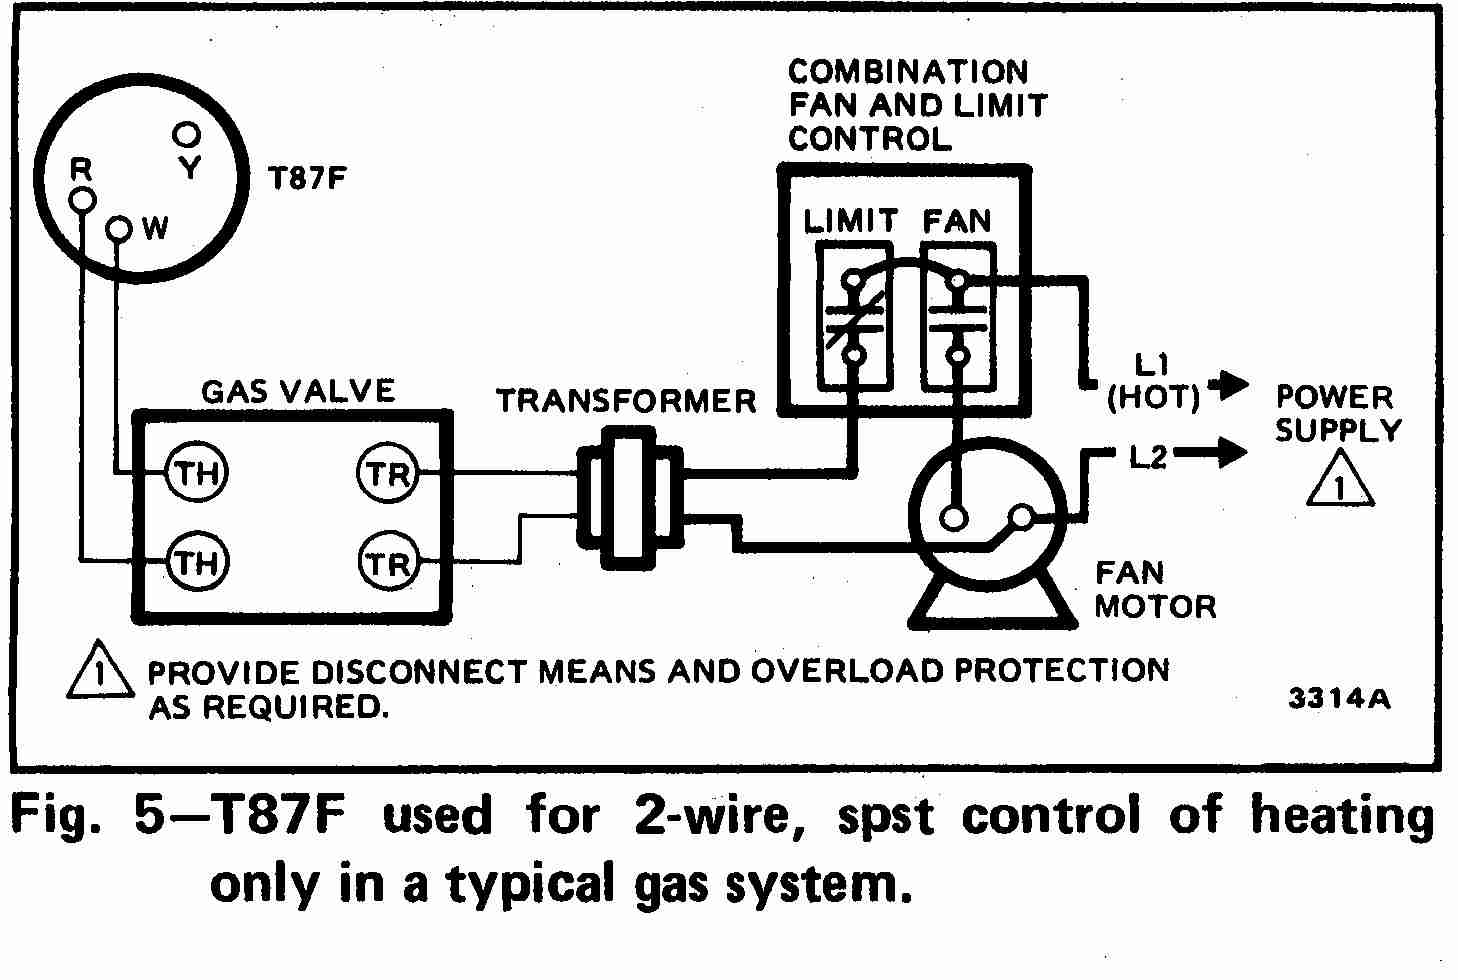 TT_T87F_0002_2Wg_DJF room thermostat wiring diagrams for hvac systems lennox wiring diagram at creativeand.co